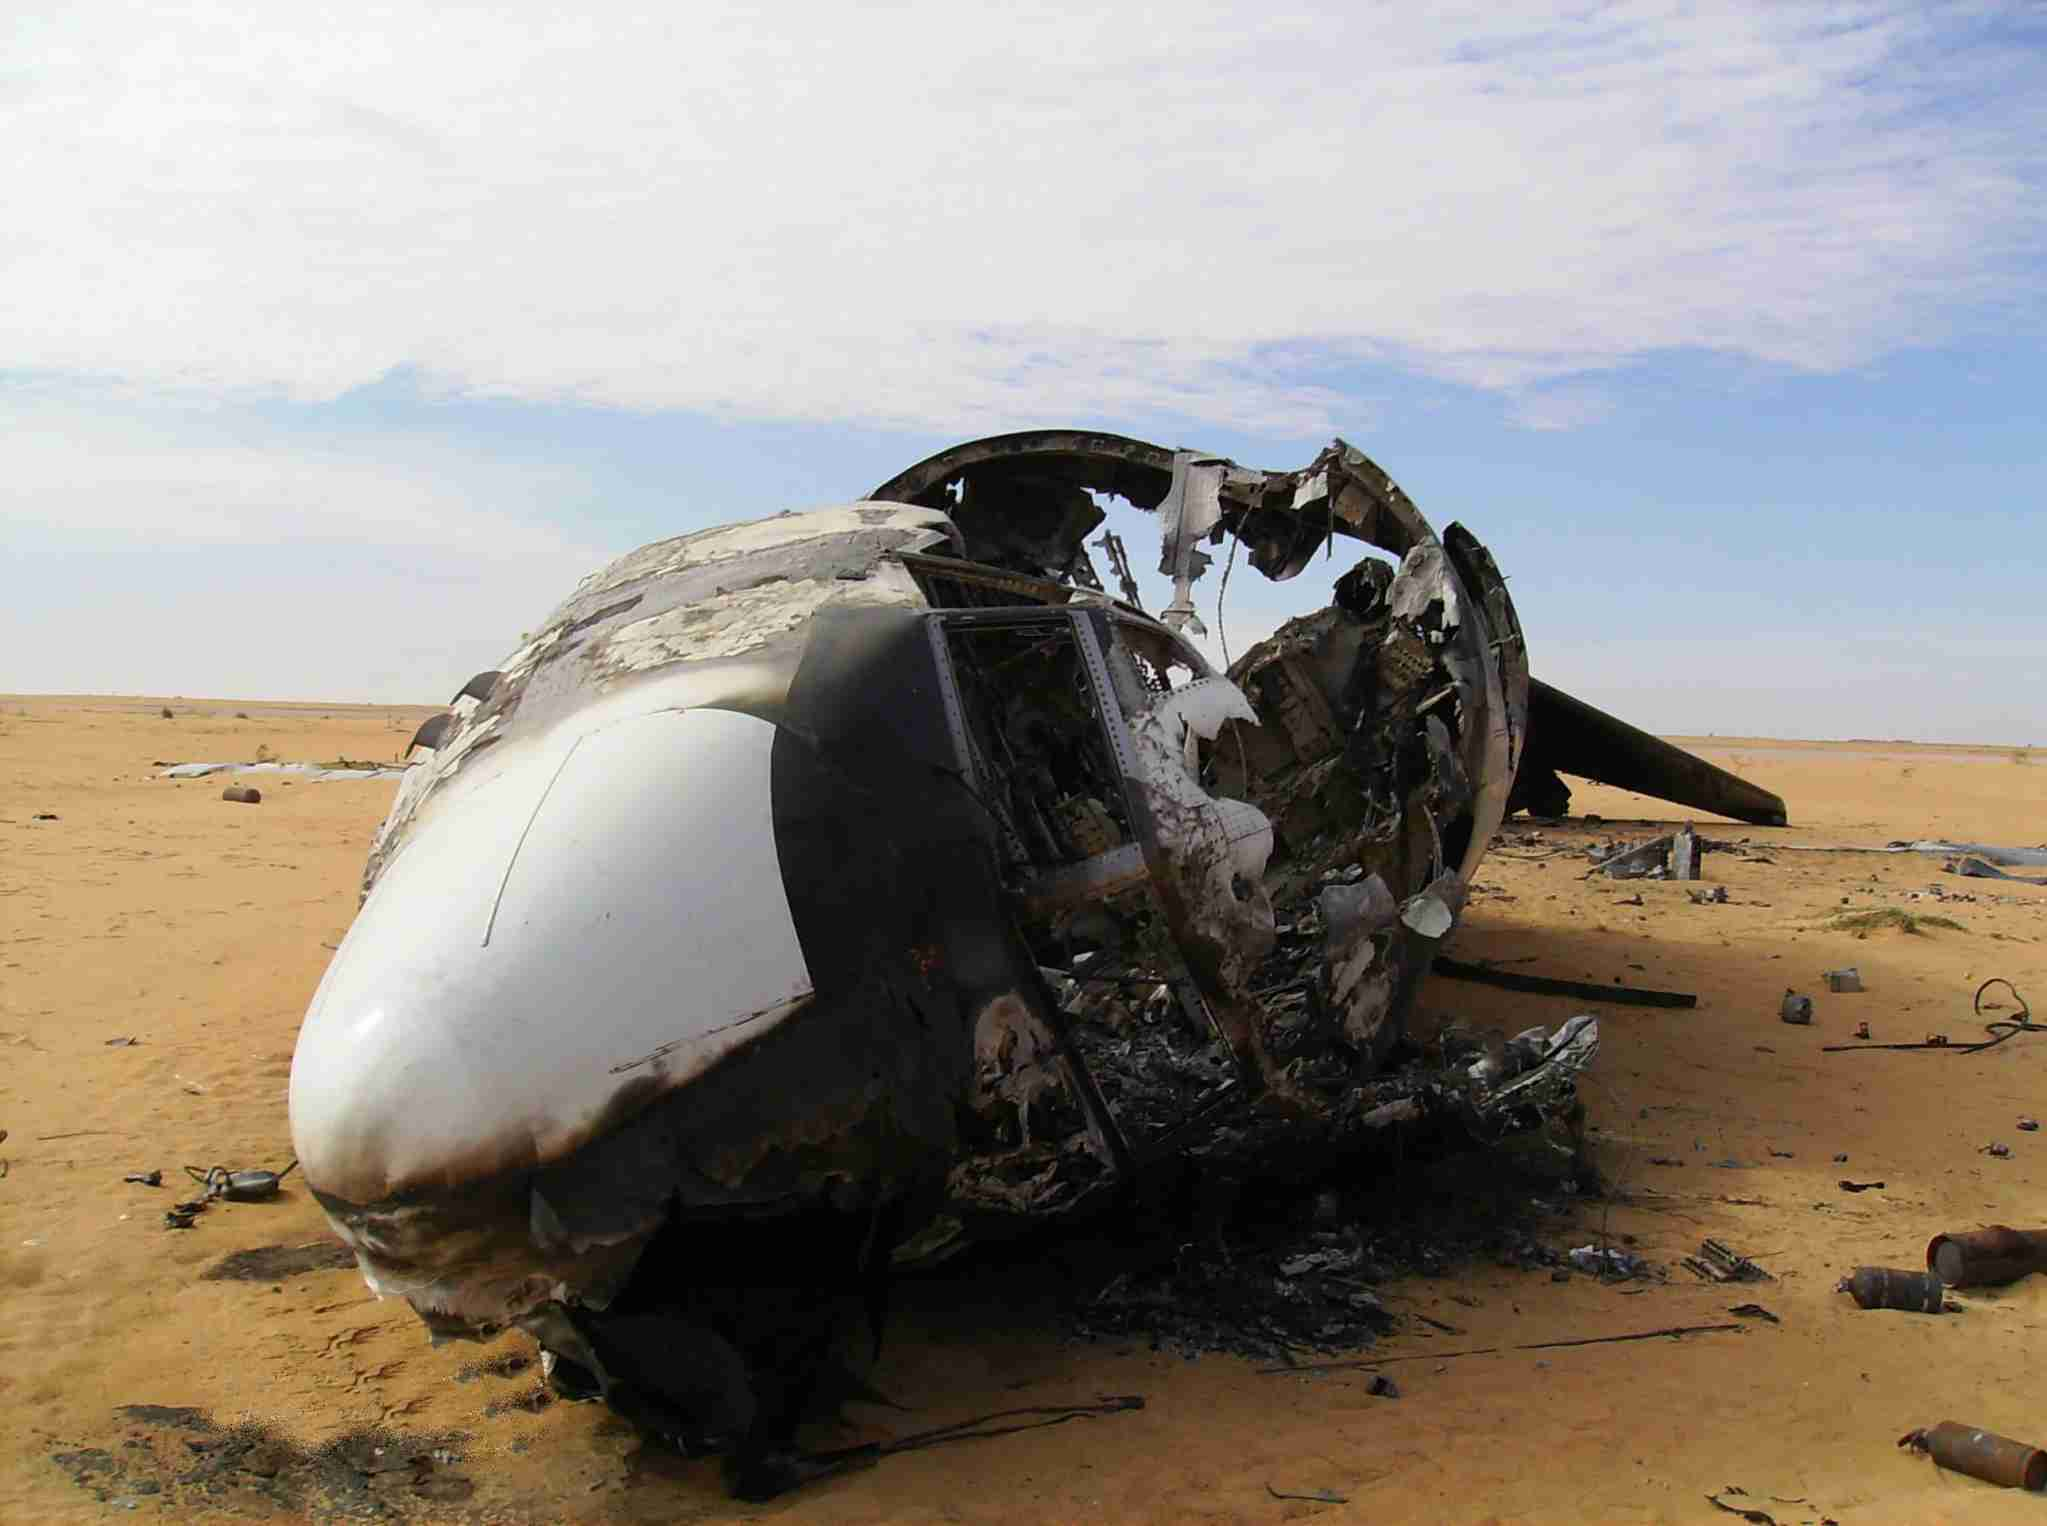 The wreck of a burnt-out Boeing 727 lies in the desert some 200 kilometres (125 miles) north of Gao in the northeast of the impoverished west African country on the southern edge of the Sahara on December 10, 2009. UN authorities said the plane transported cocaine from Venezuela to the west African country. According to the UN Office on Drugs and Crime, the Boeing 727 landed on a makeshift airstrip and unloaded a cargo of illegal drugs before crashing as it tried to take off. AFP PHOTO SERGE DANIEL (Photo credit should read SERGE DANIEL/AFP/Getty Images)